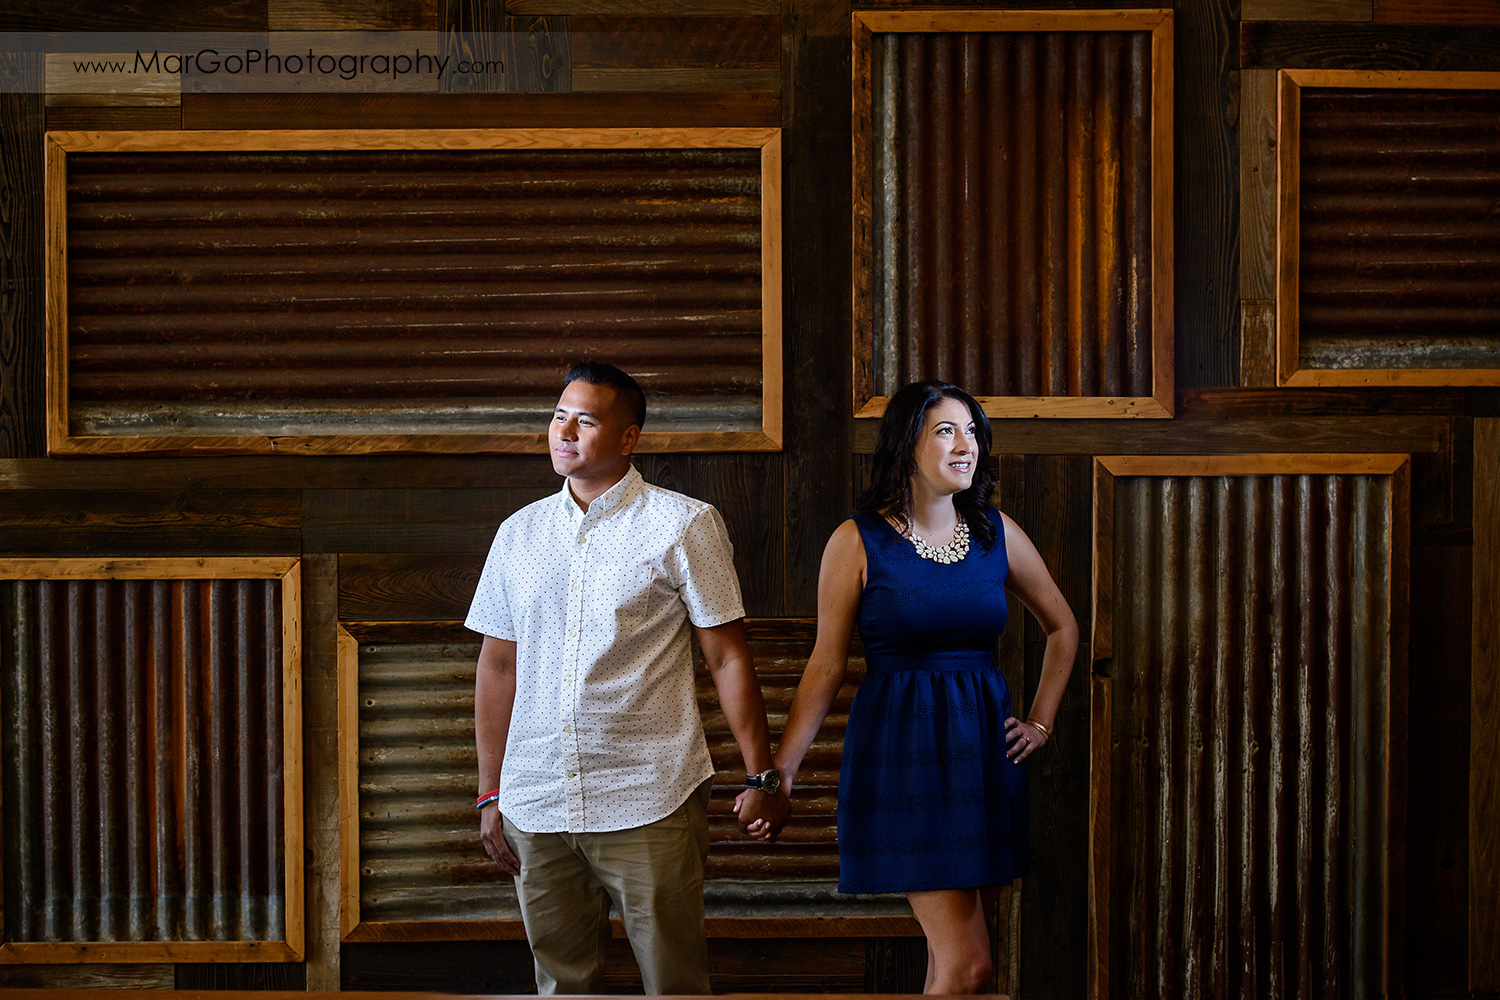 portrait of woman in blue dress and man in white shirt on wooden wall looking in the opposite direction during engagement session at San Pedro Square Market in San Jose